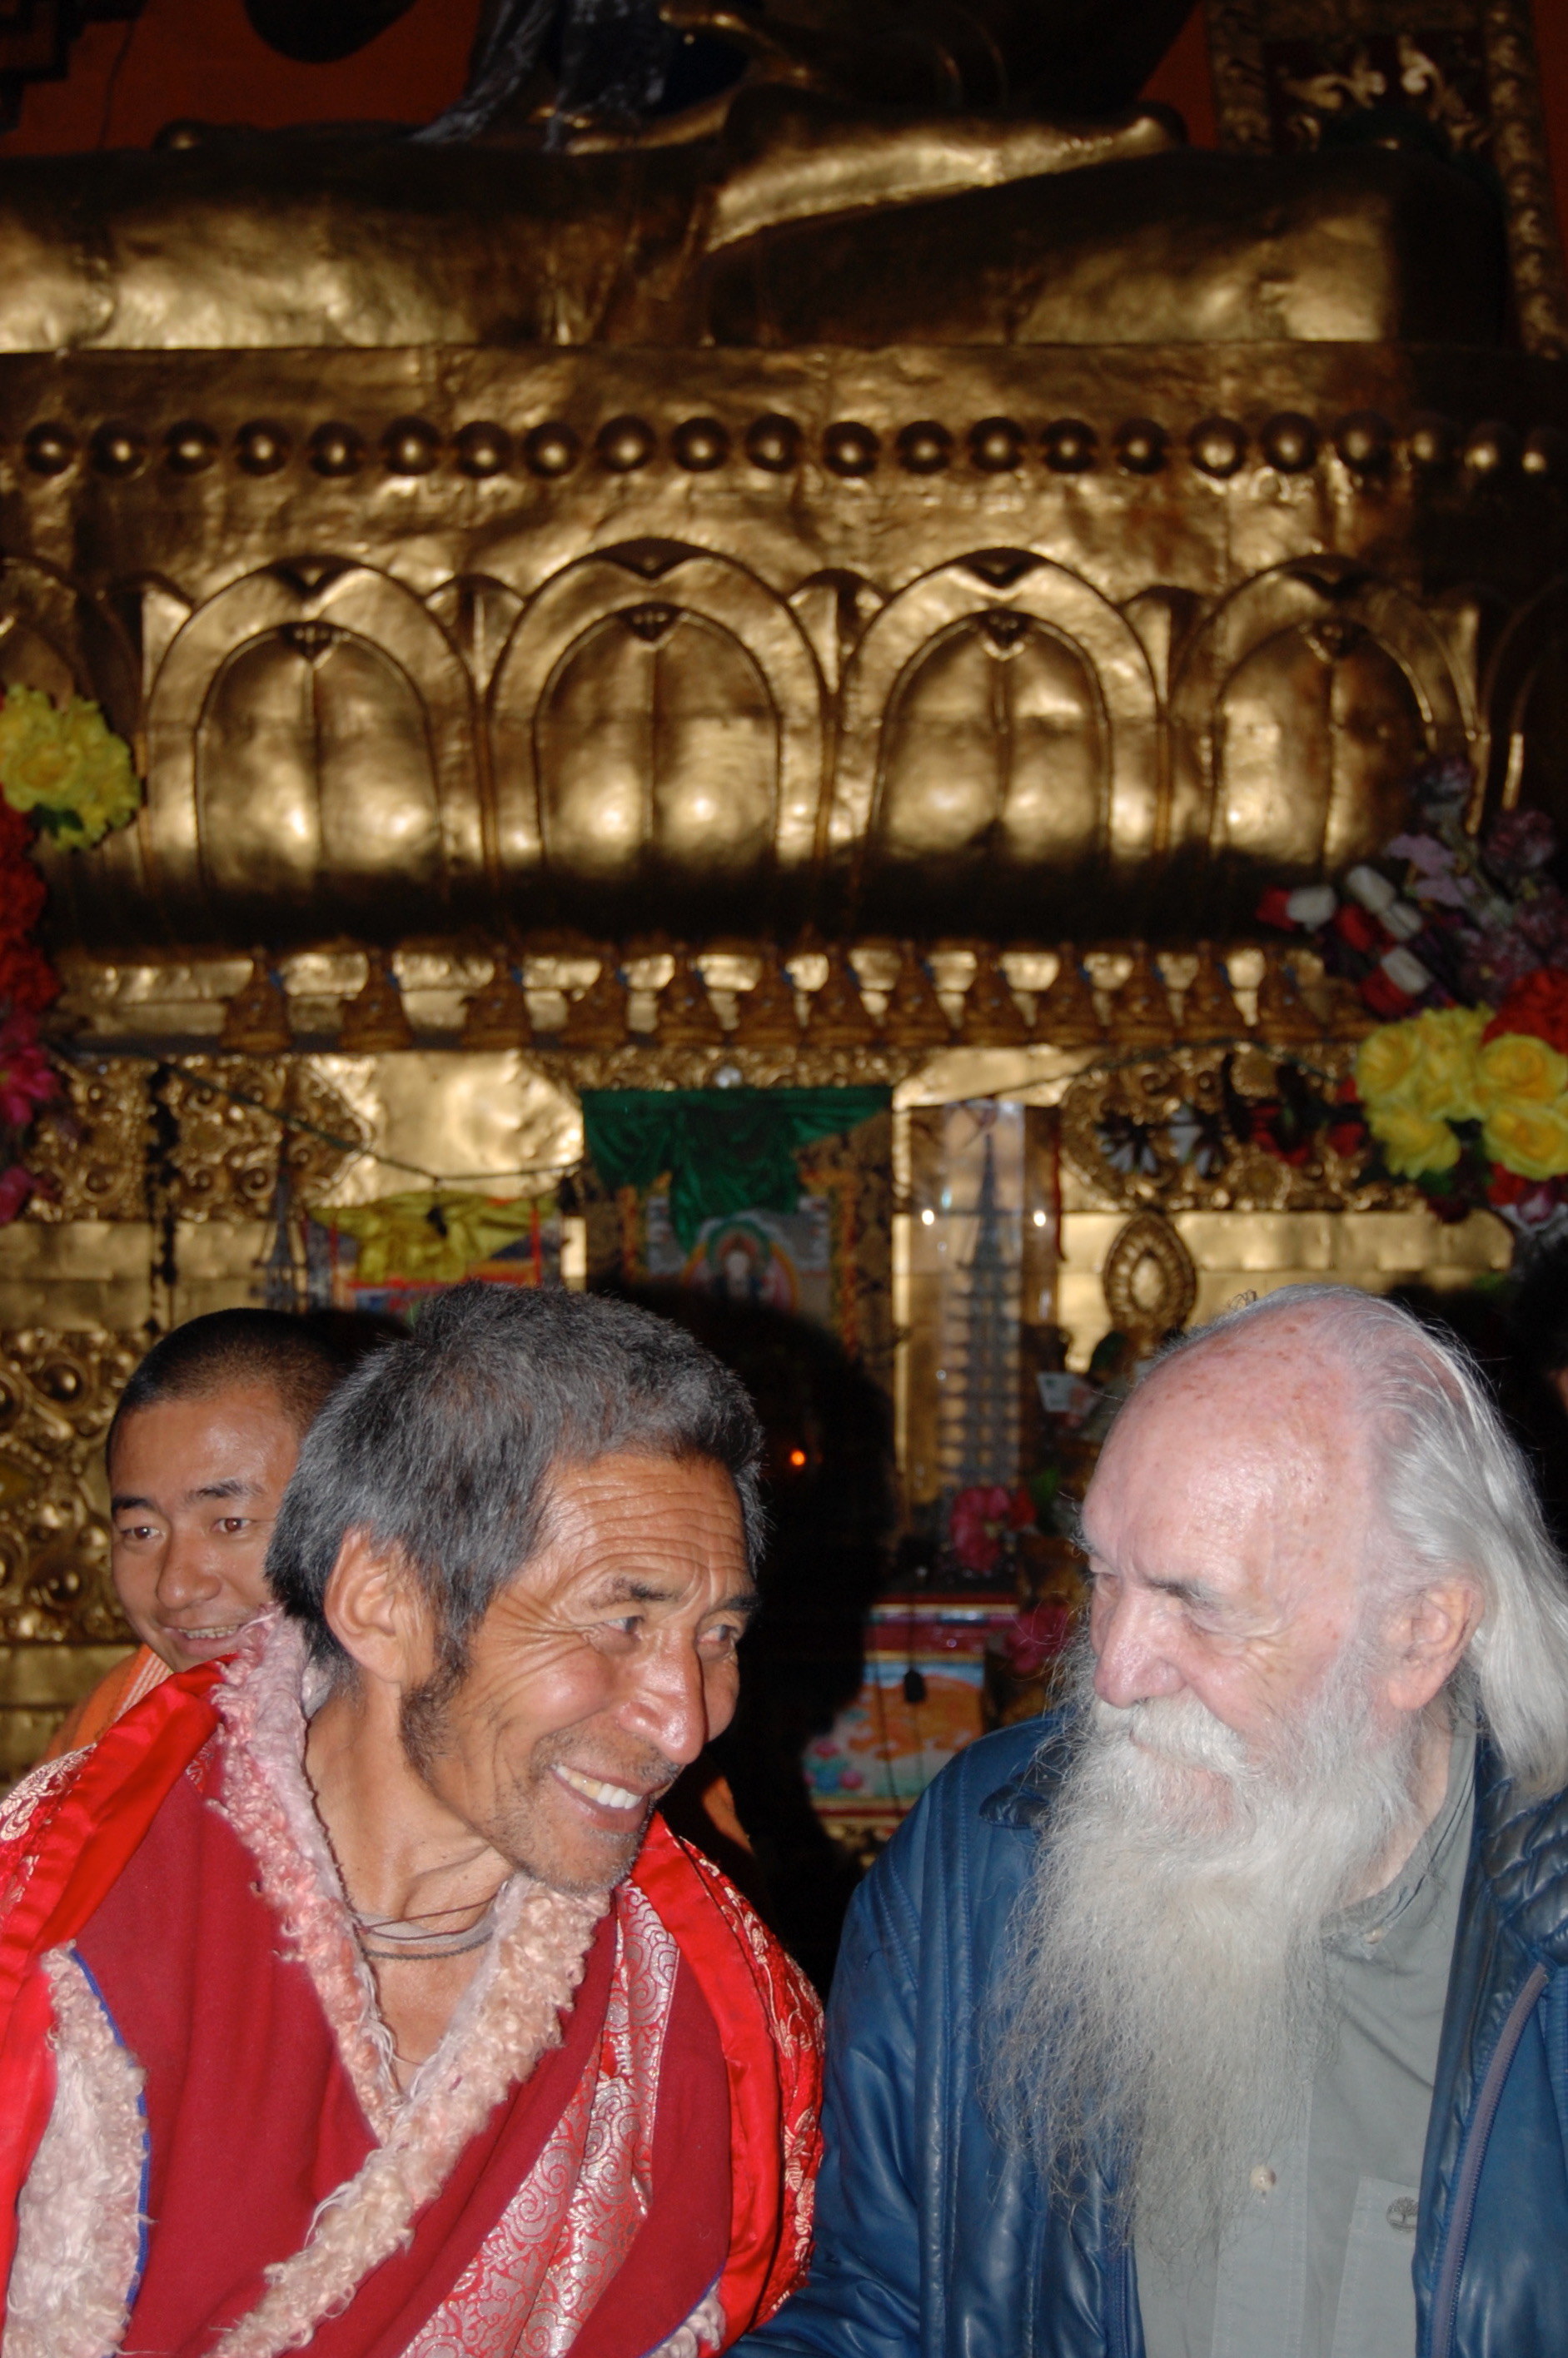 Long lost karmic brother reunited. Jacques Pialoux together with a senior Lama who had come out of a ten year retreat to welcome us (Kham Region, Sichuan)